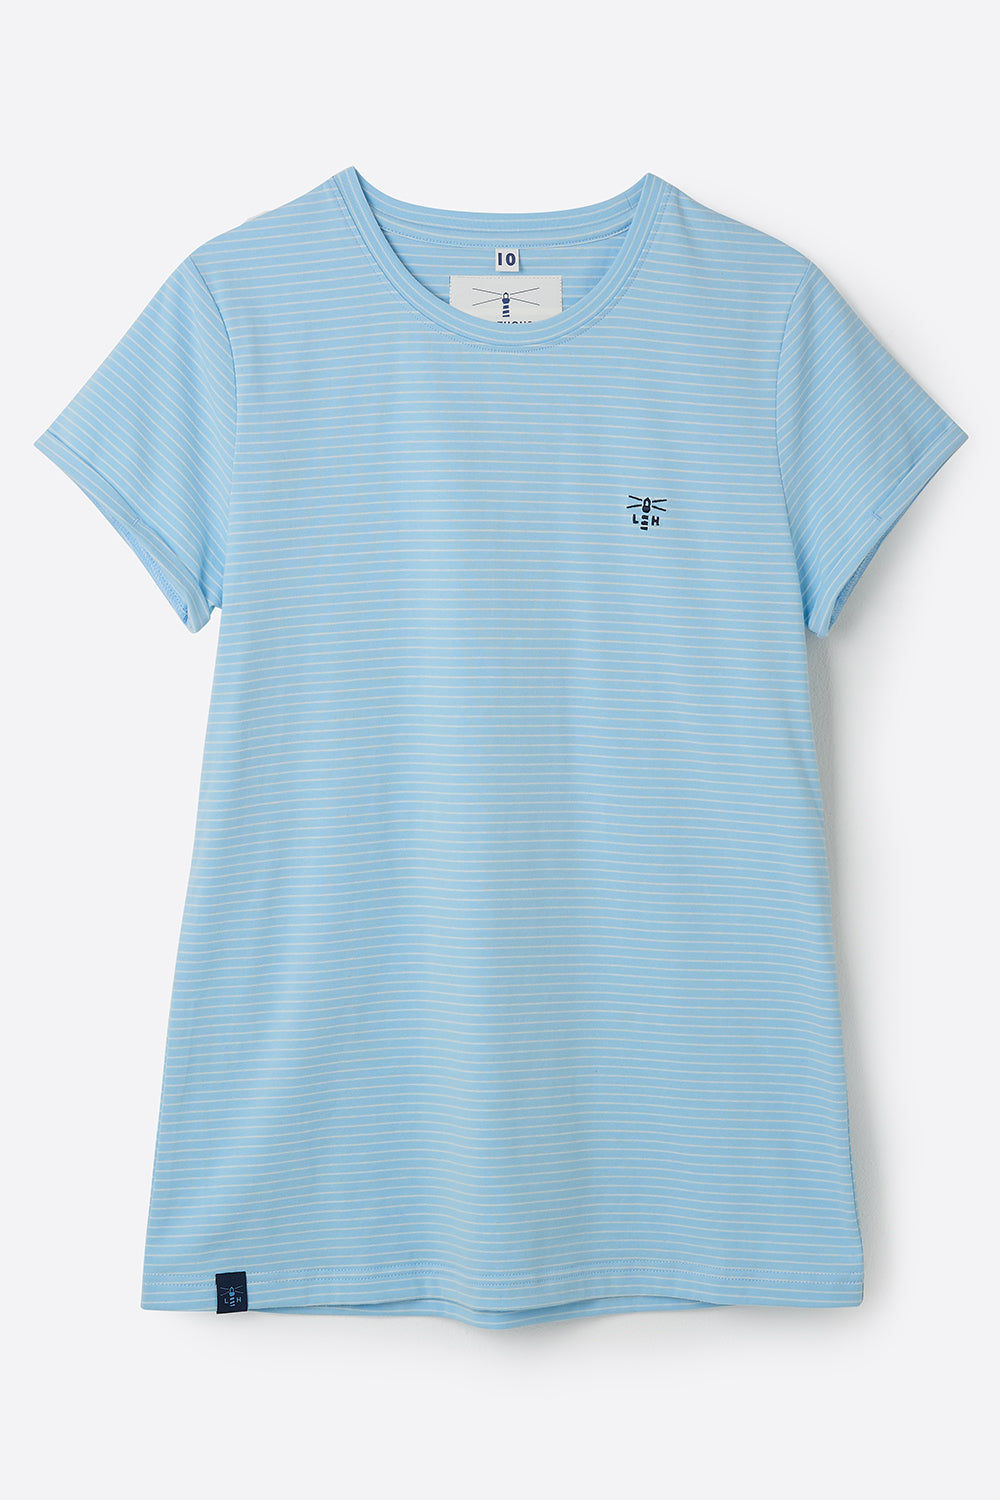 Seashore T Shirt - Pale Blue Stripe